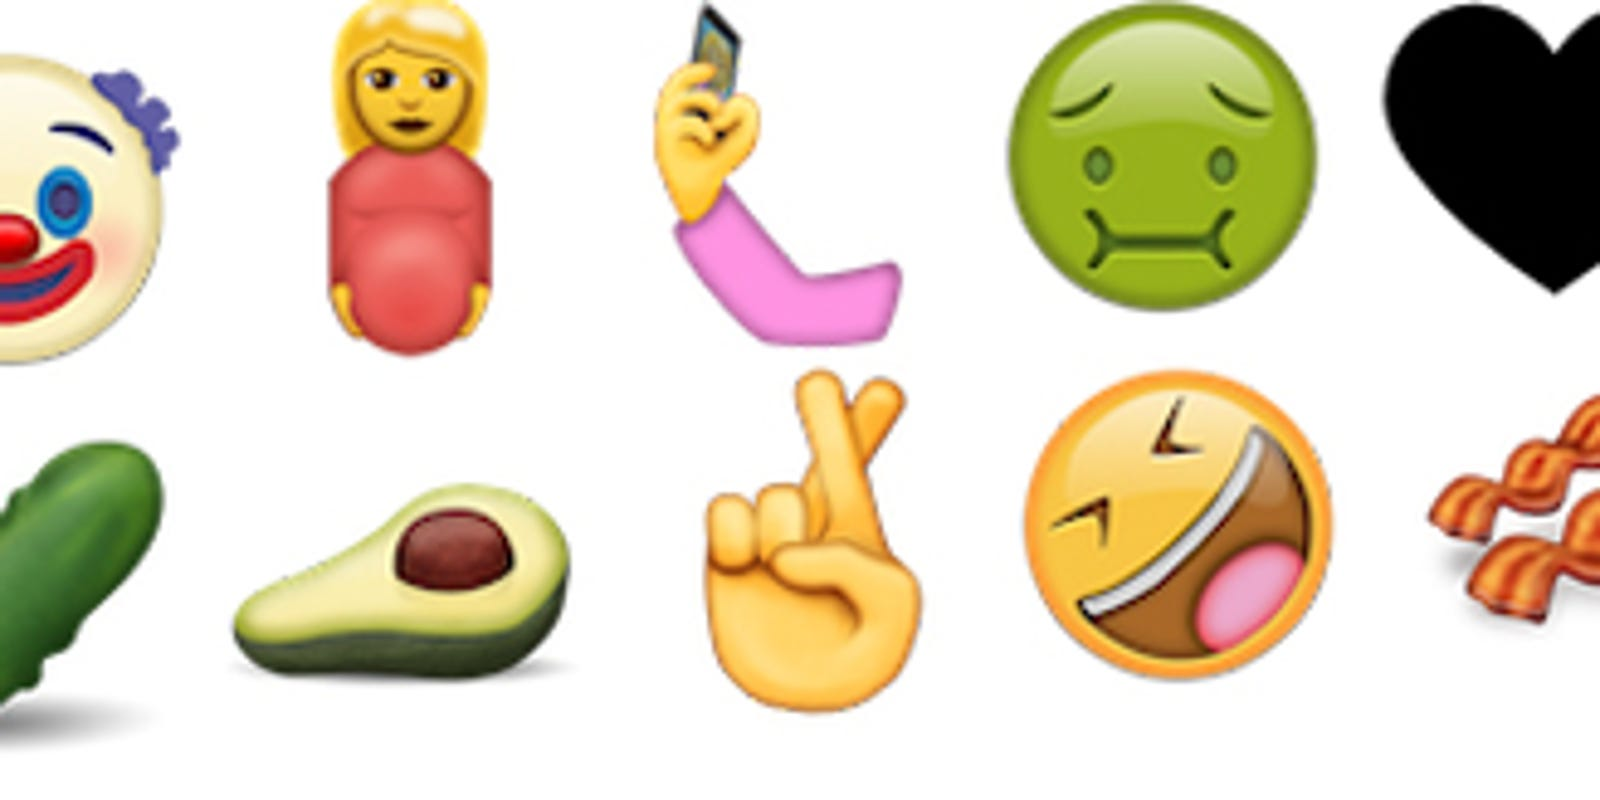 Emoji Candidates For 2016 Include Selfie Clown Pickle